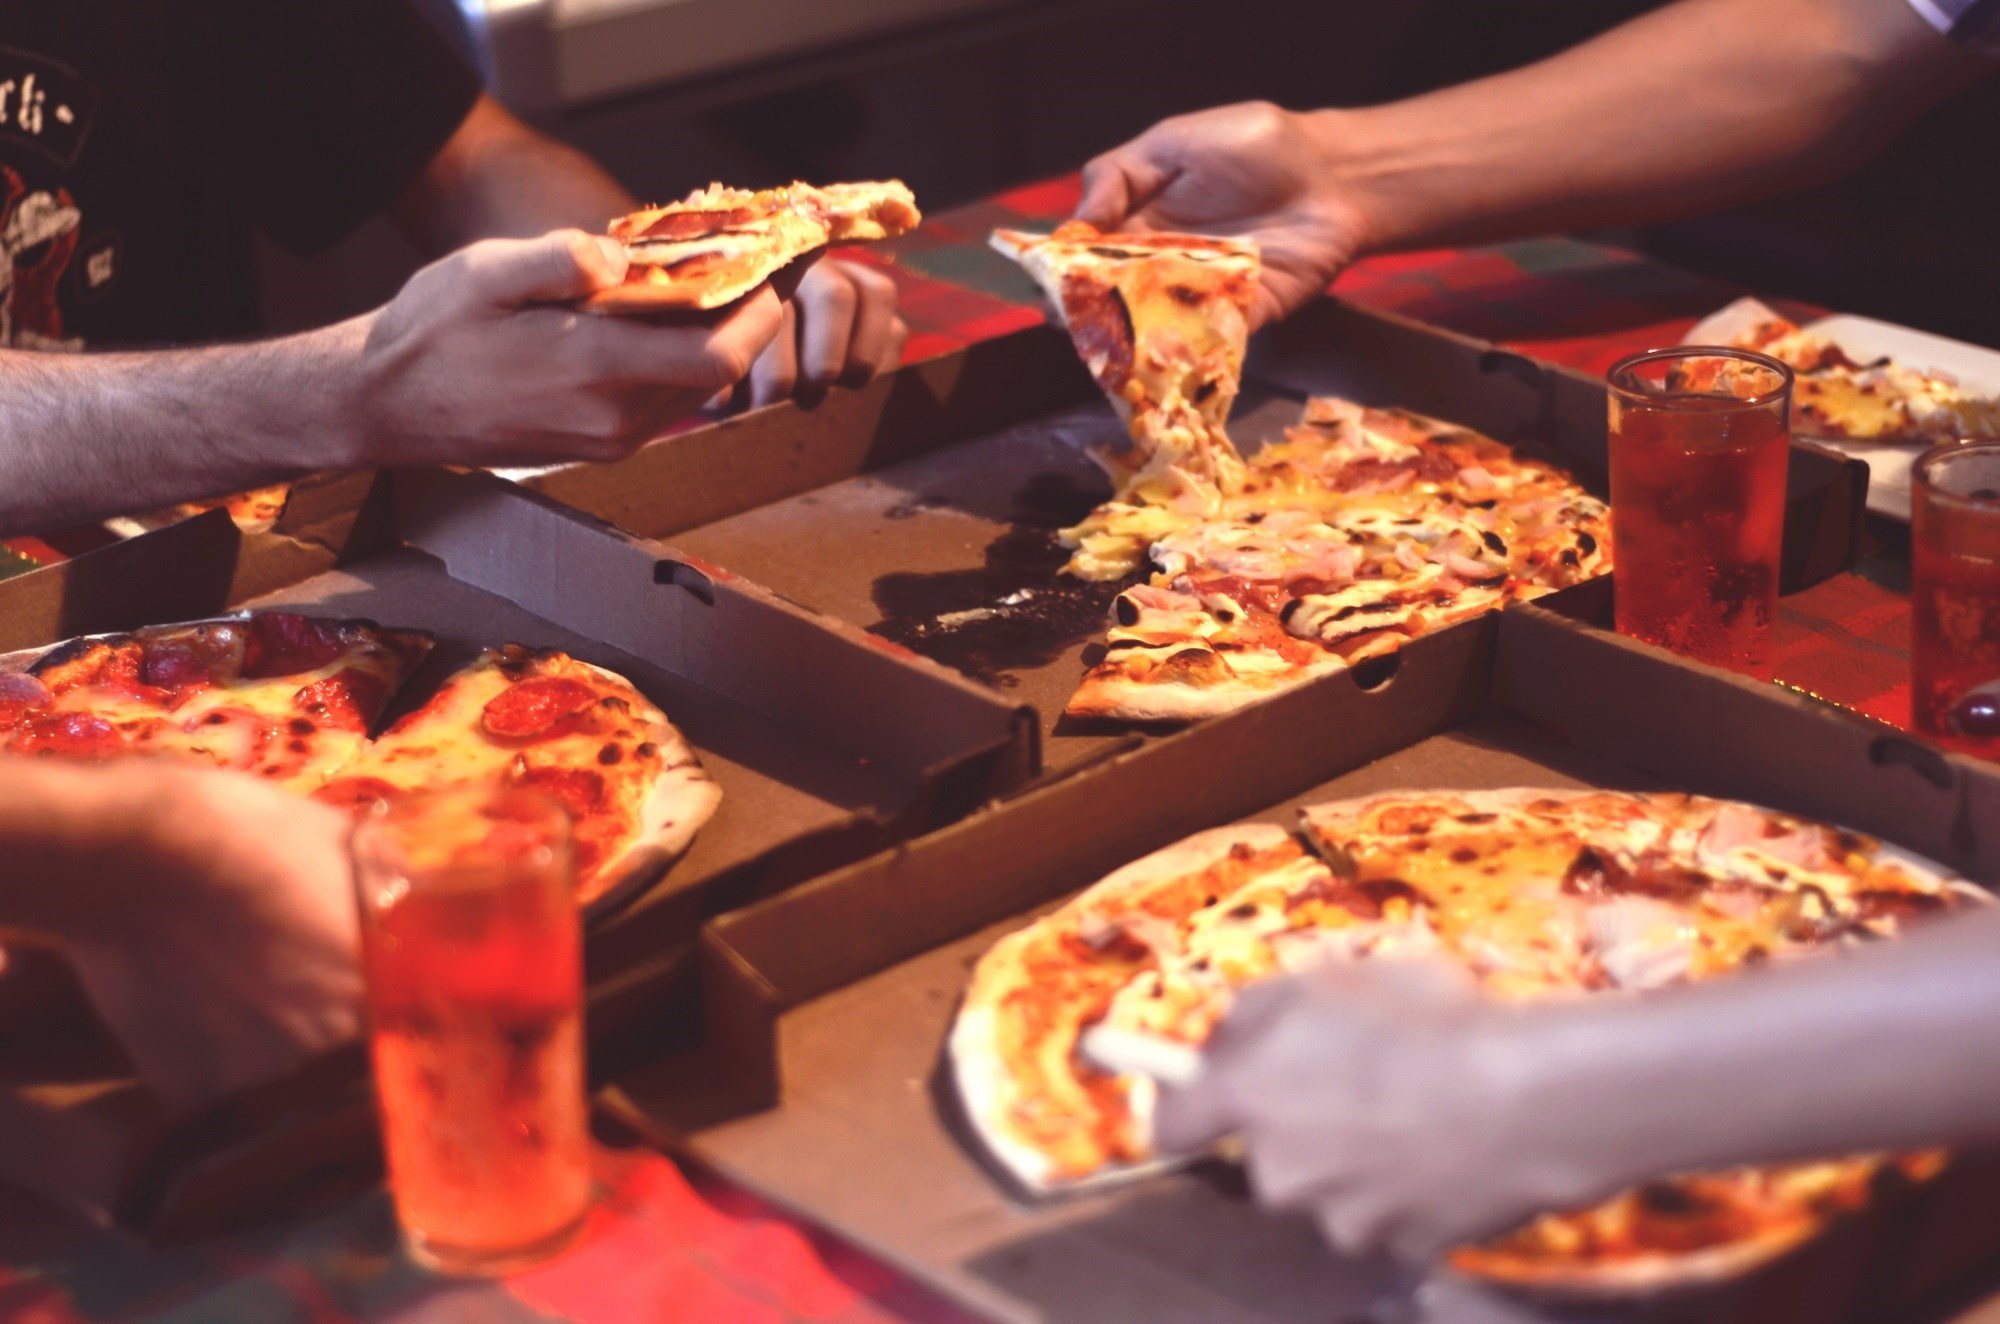 Exposure to Ready-to-Eat Food Outlets Associated With Risk for Type 2 Diabetes